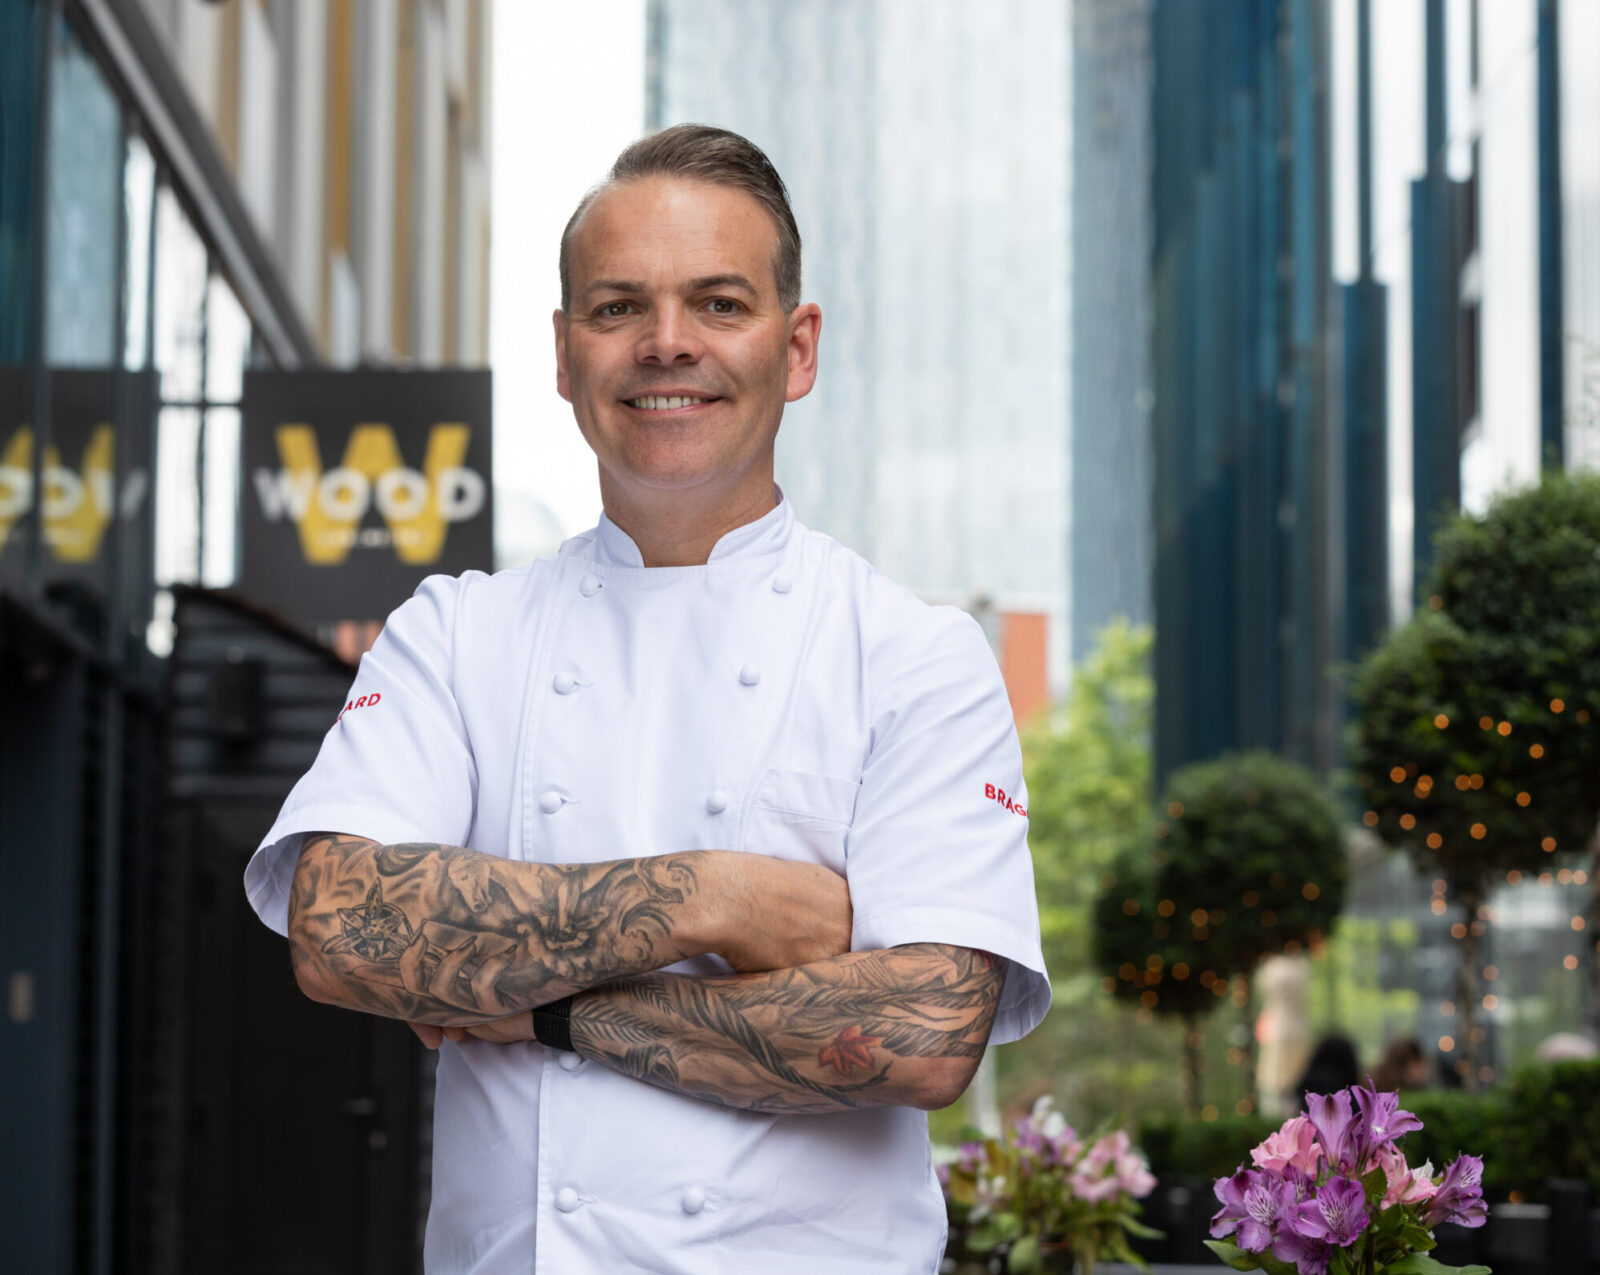 Manchester chef Simon Wood is helping feed families for £30 with new website, The Manc